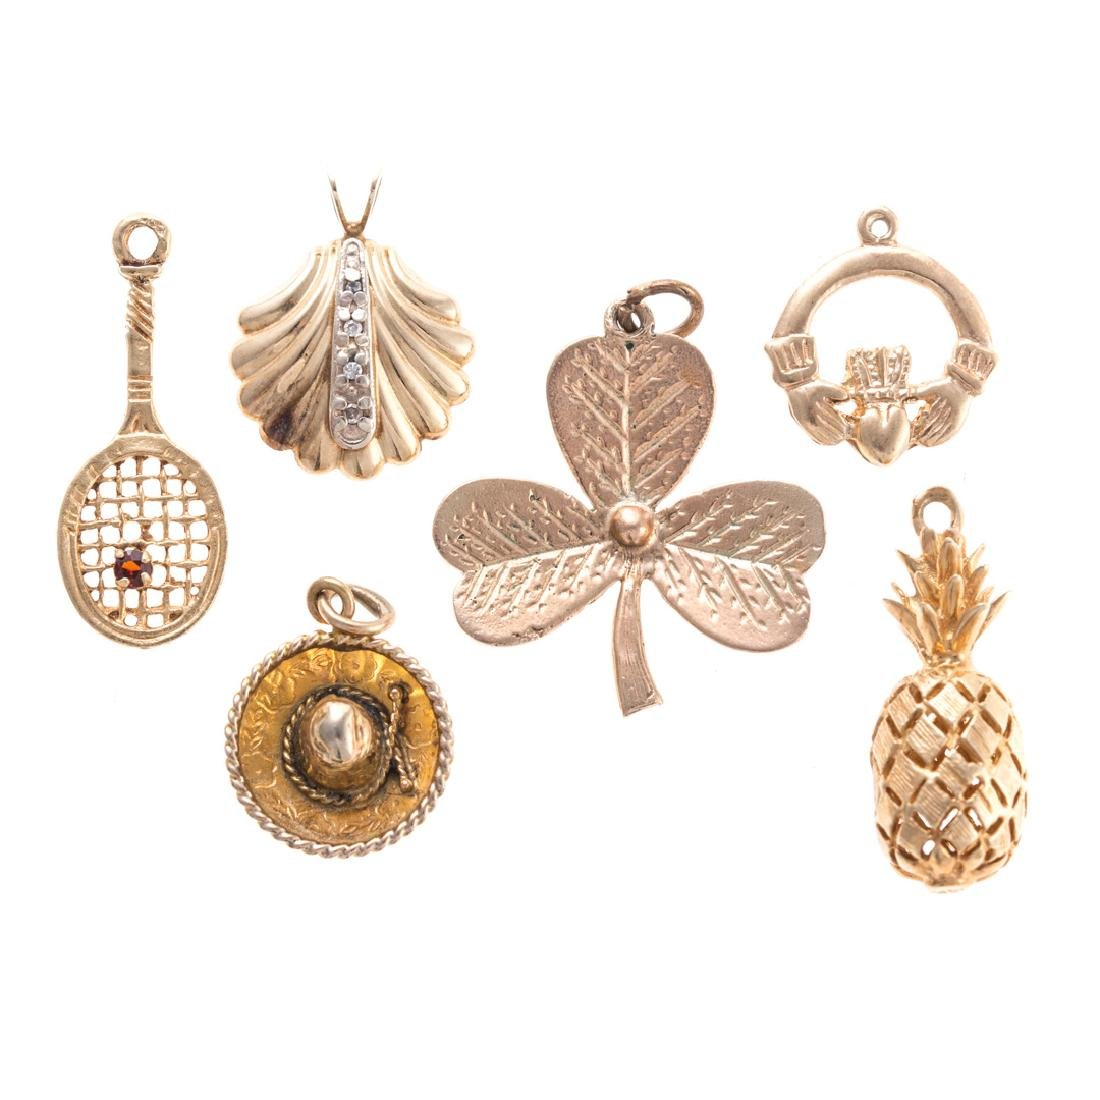 A Collection of Gold Charms